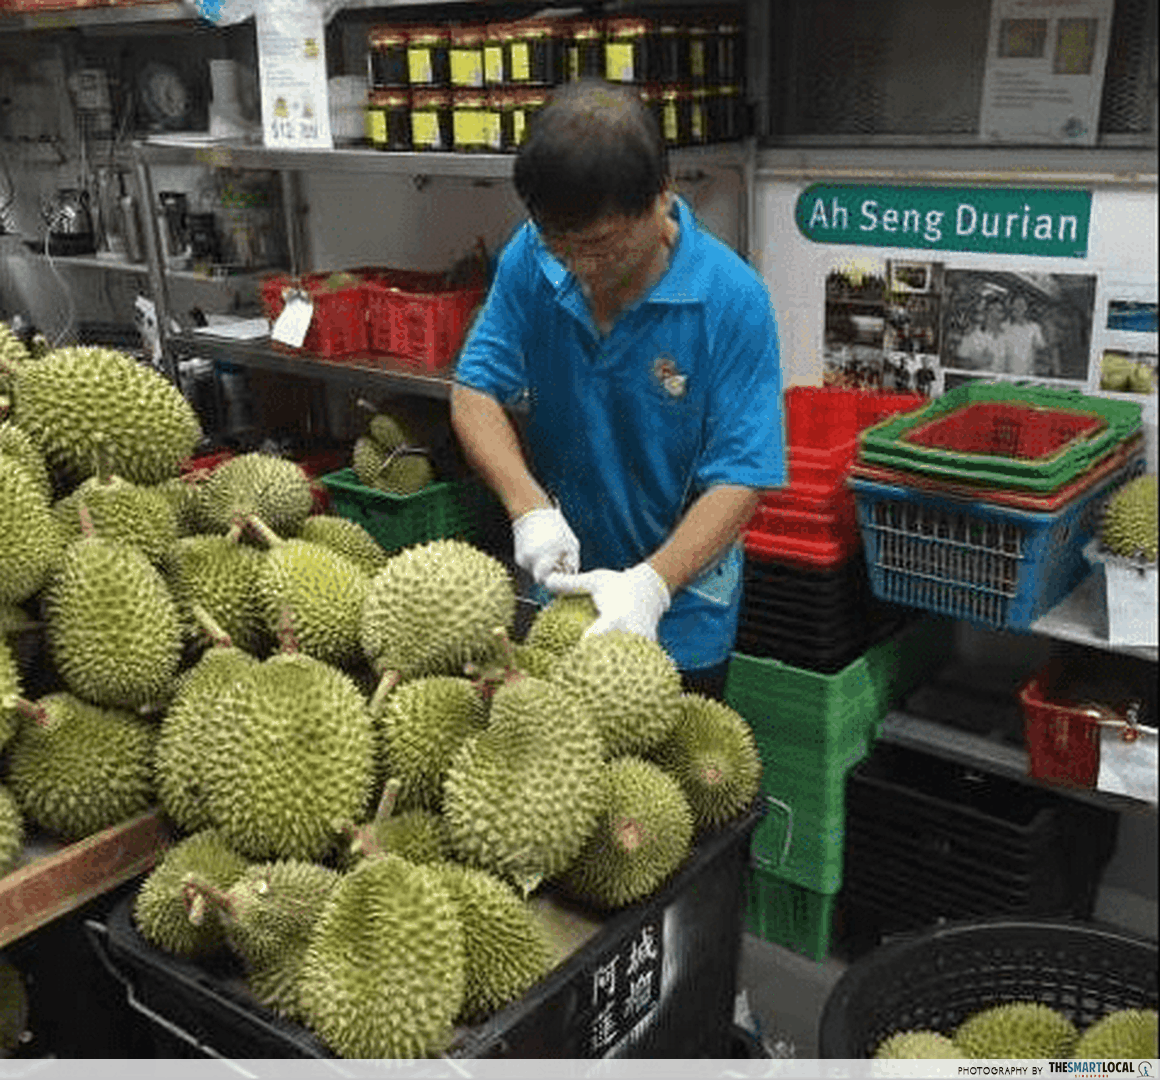 ah seng cutting durian